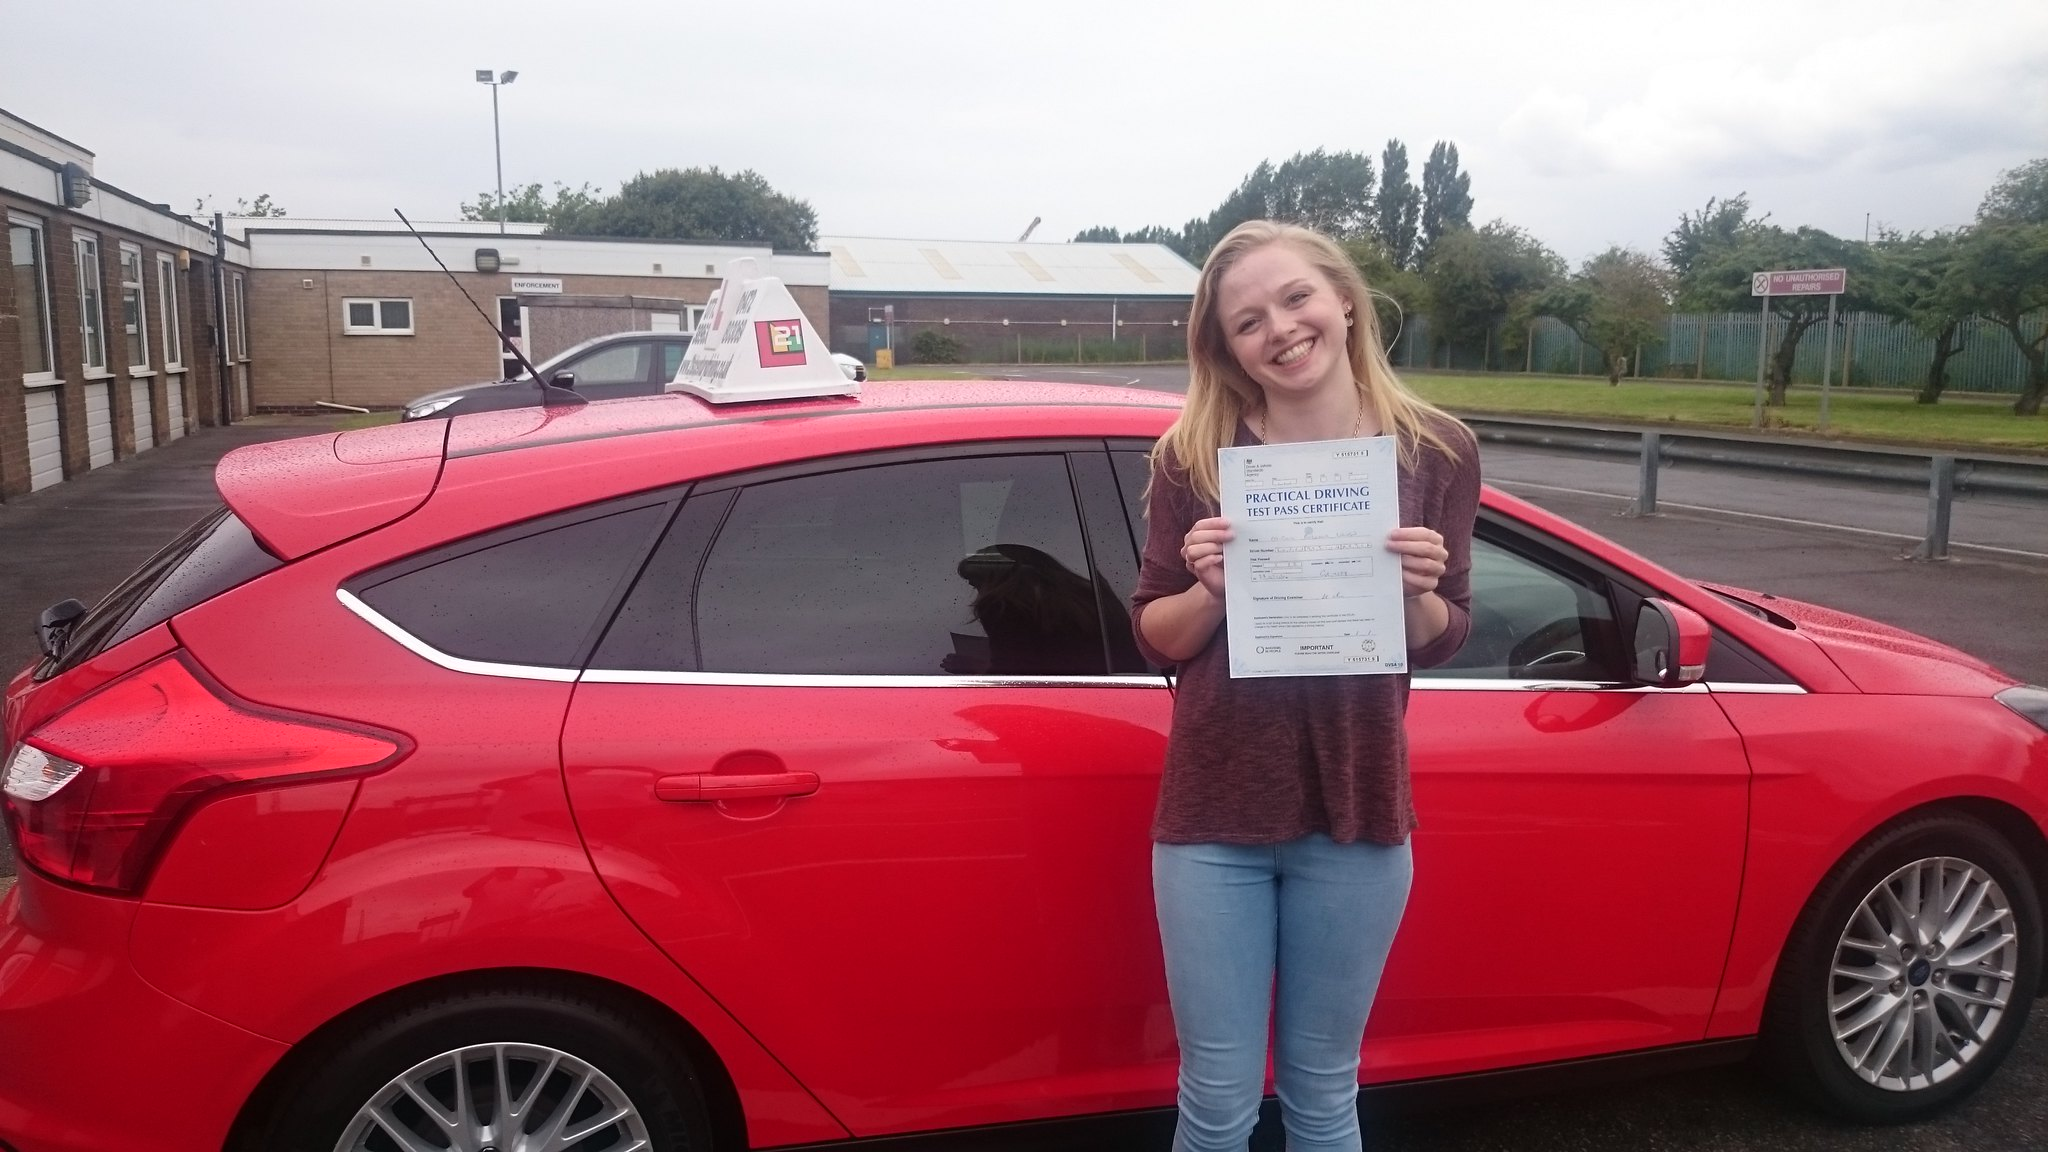 Abigail Laven passes driving test in grimsby with 21st Century Driving